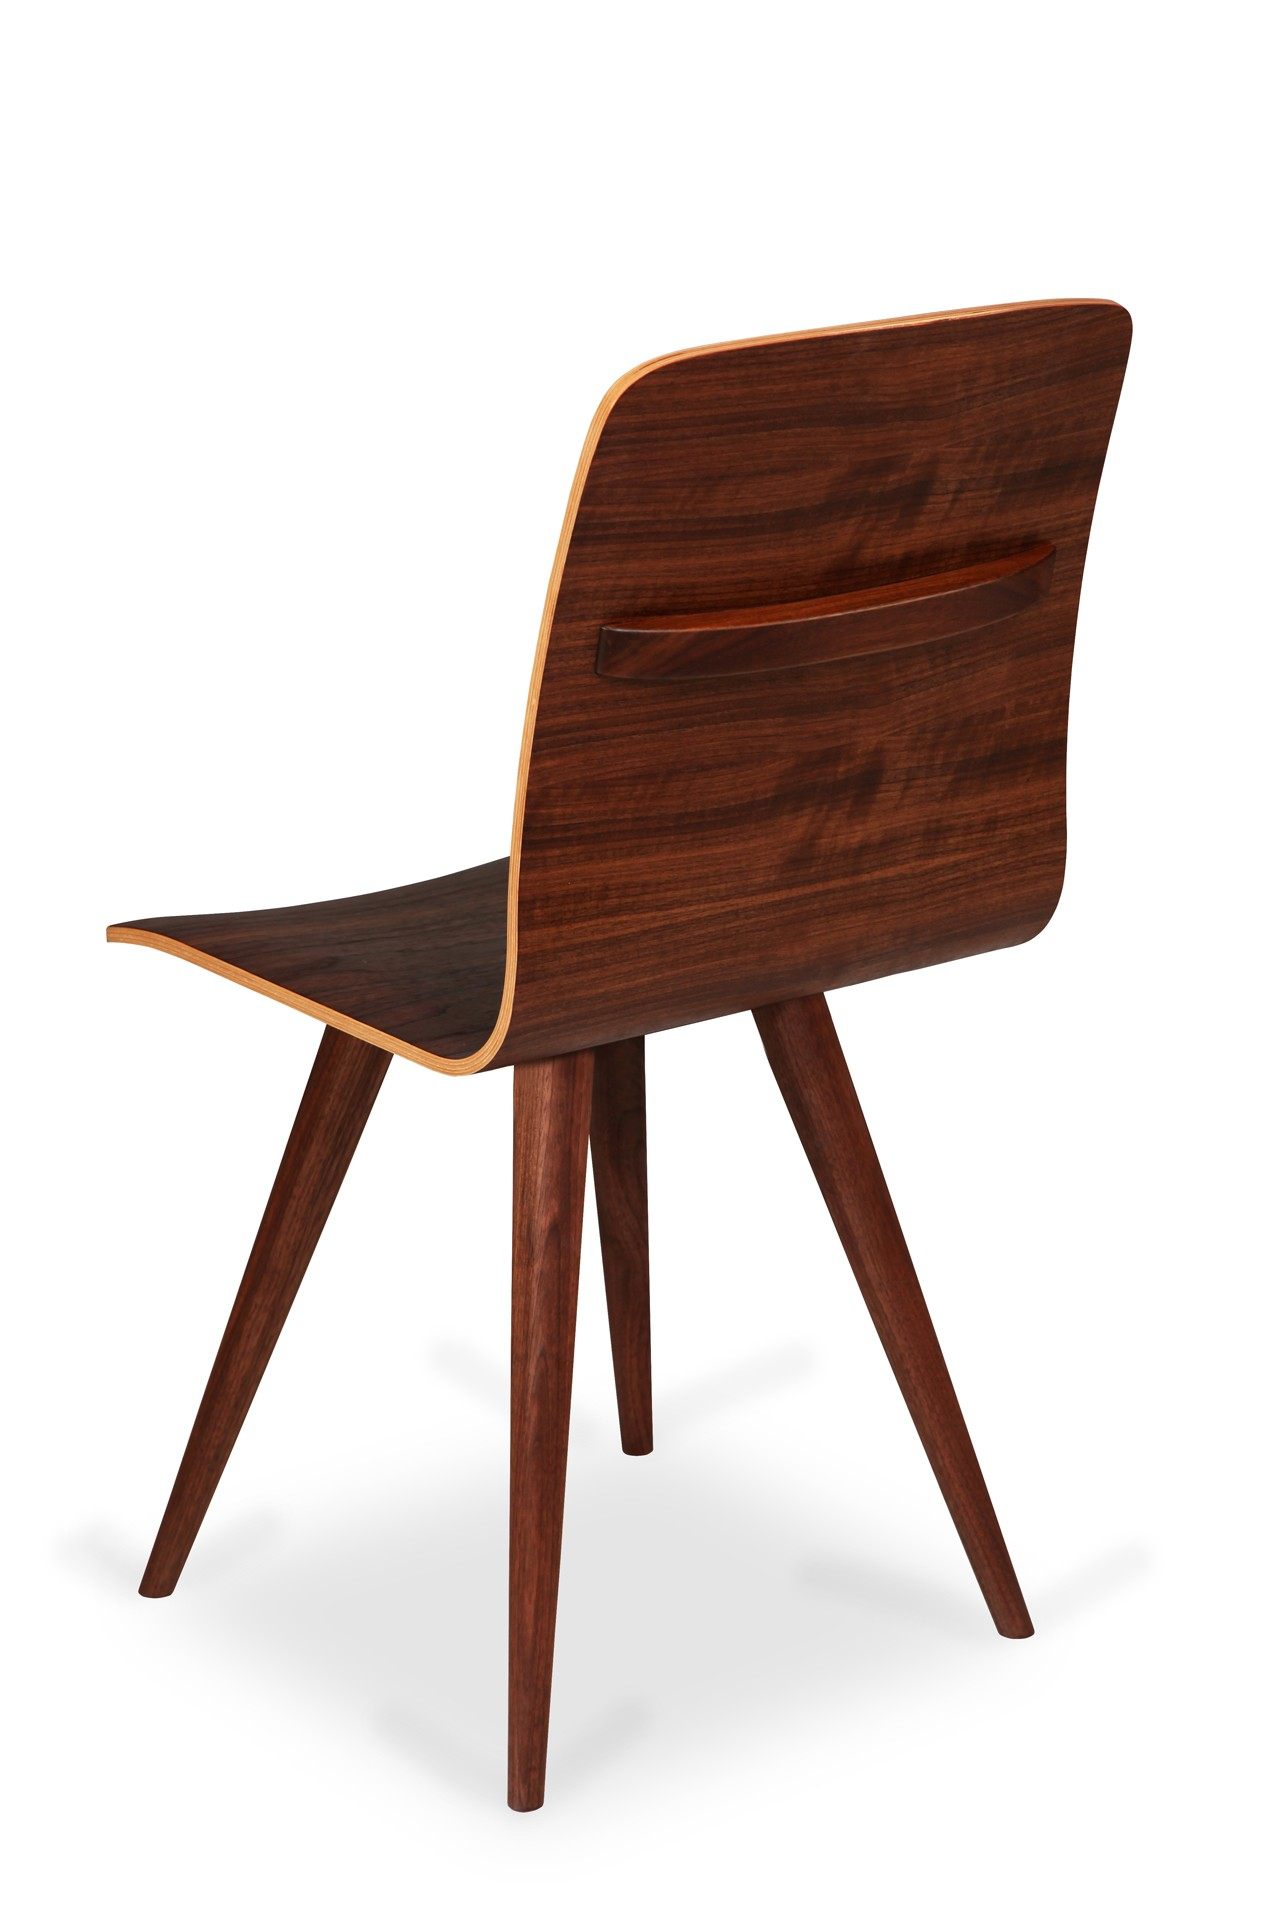 GATTA CHAIR wholly wooden with handle